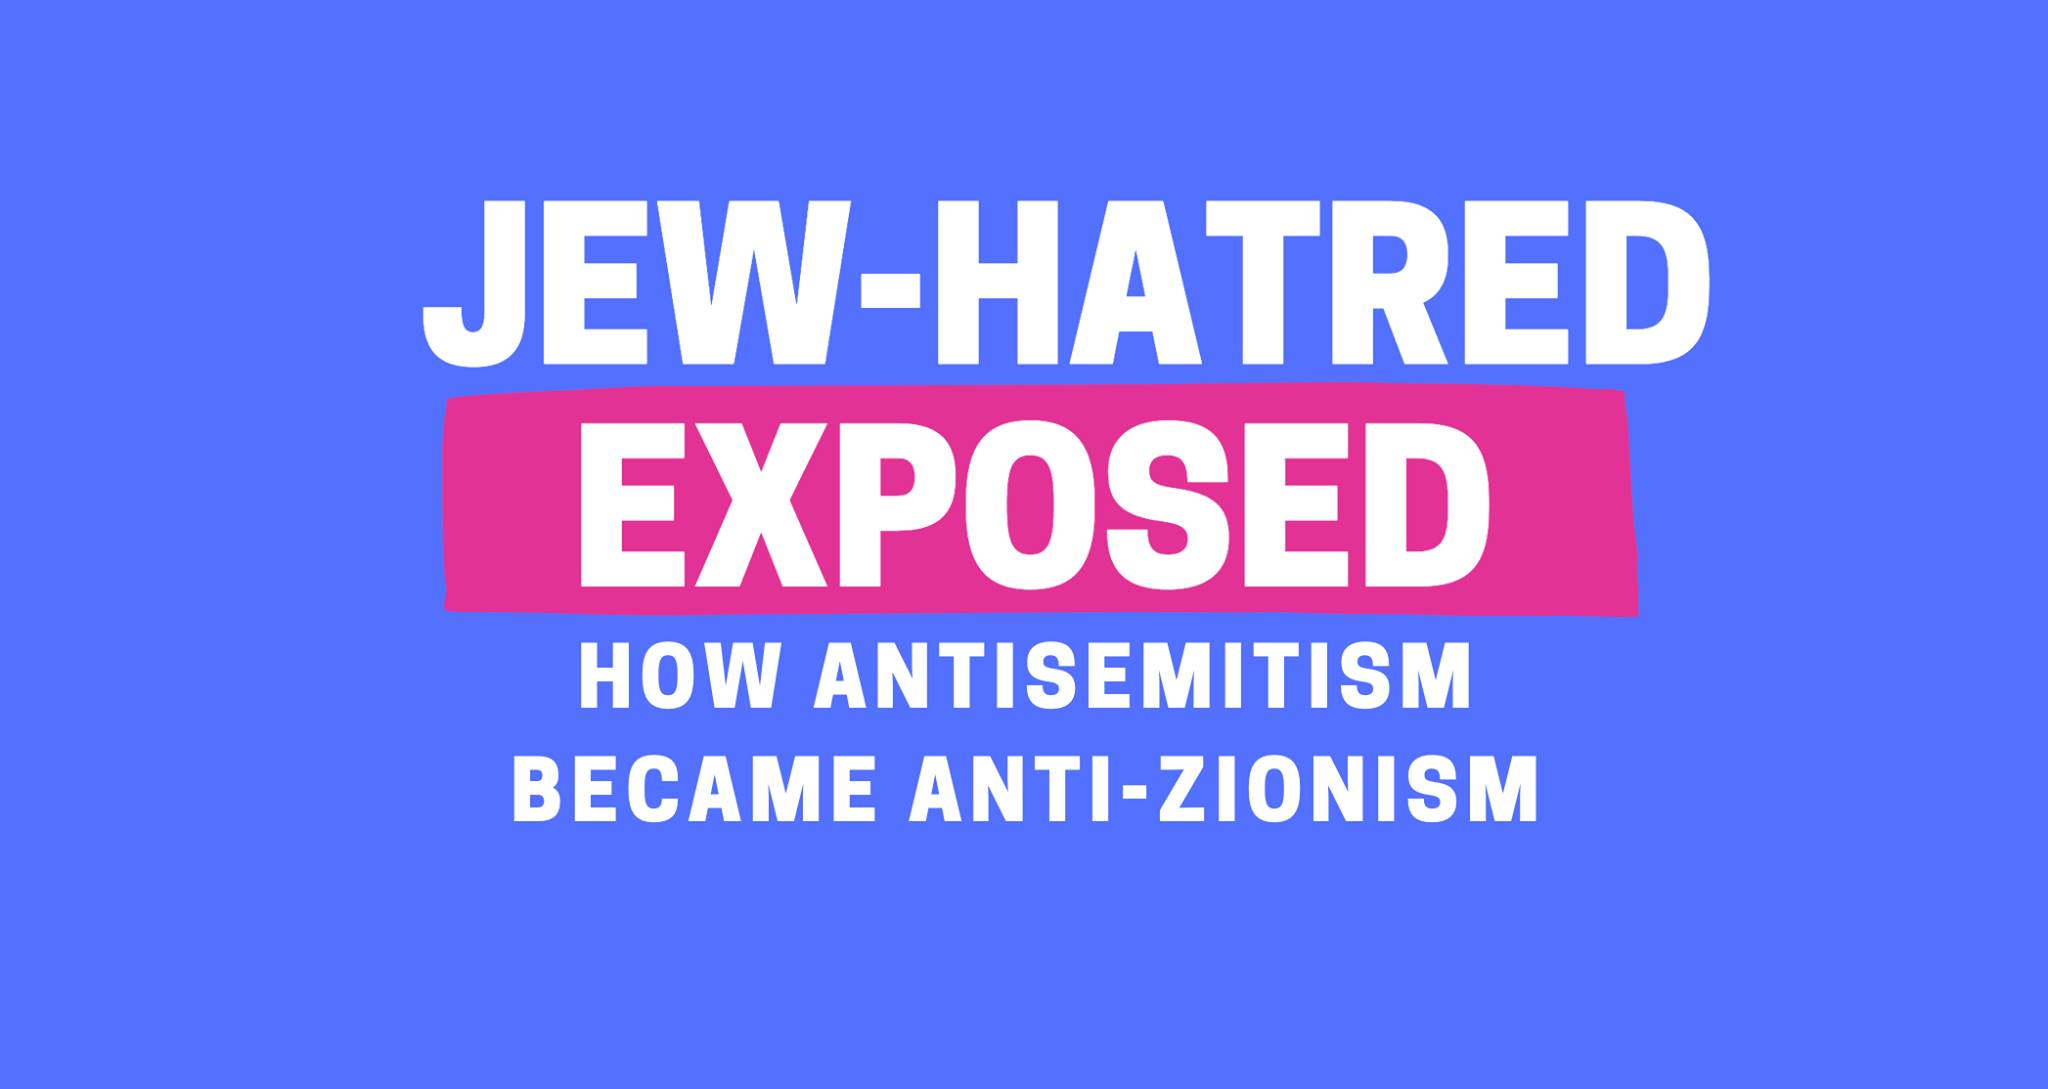 How Antisemitism Became Anti-Zionism